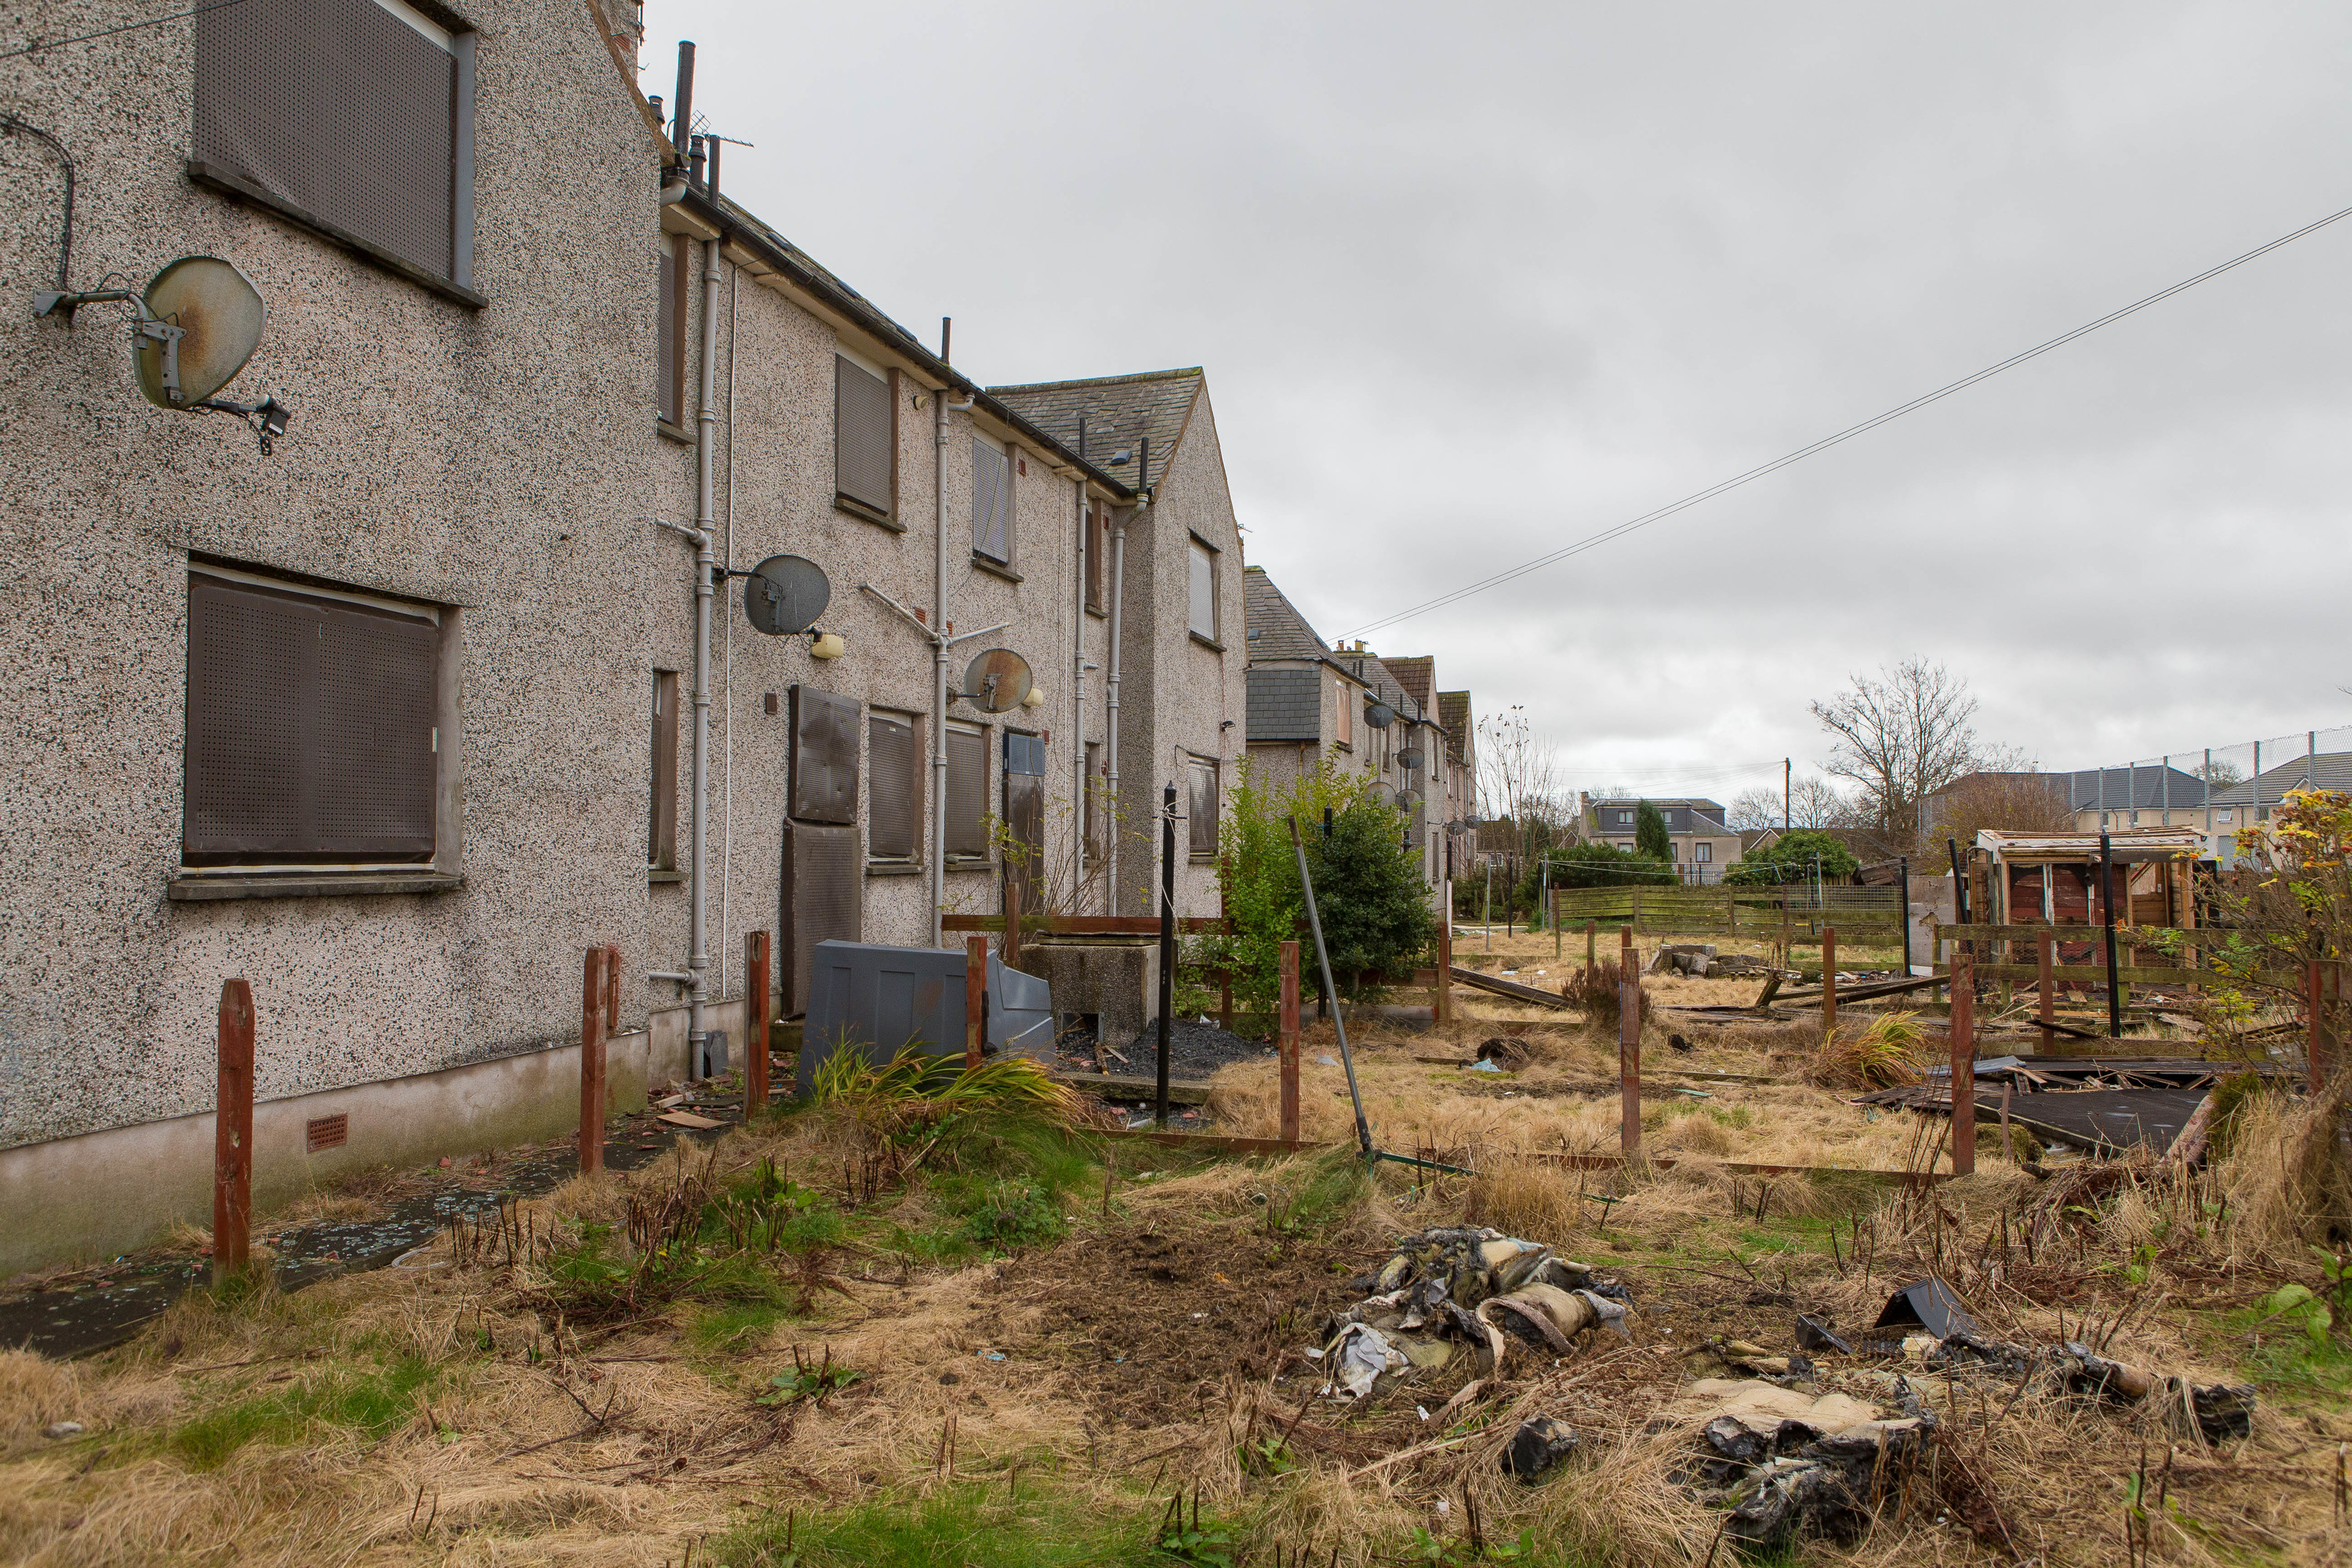 Derelict housing in Inchgall Avenue Crosshill is marked for demolition, but locals are concerned about the general state of the area in the meantime.